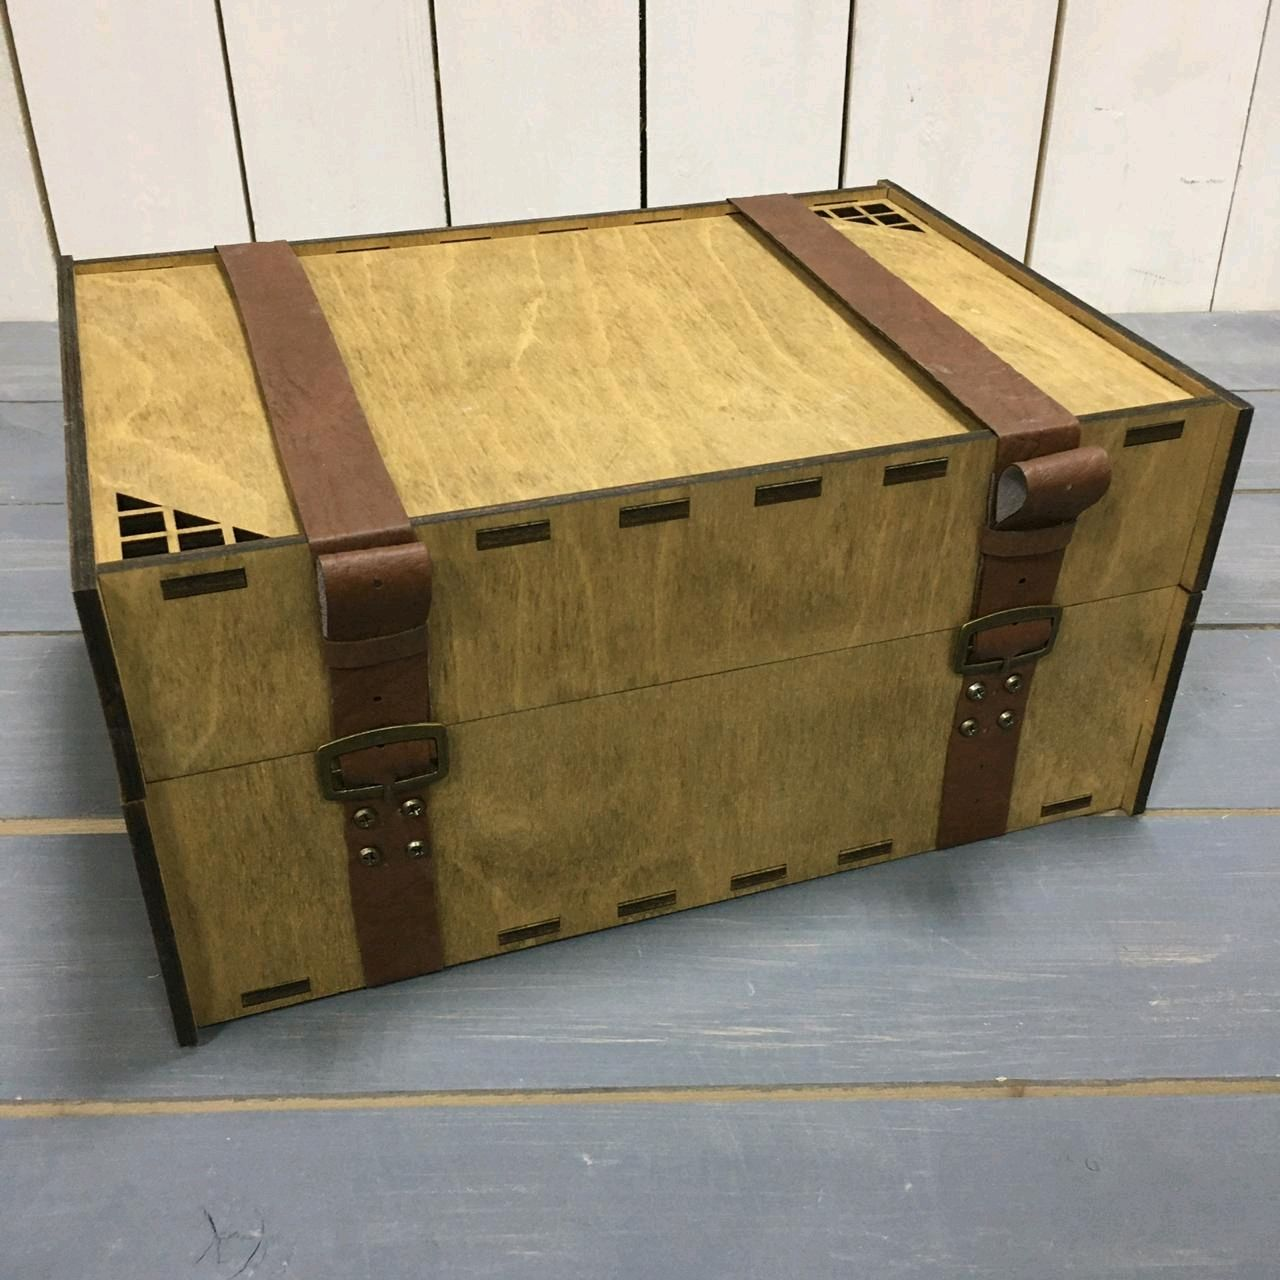 Suitcase as a gift, Storage Box, Moscow,  Фото №1